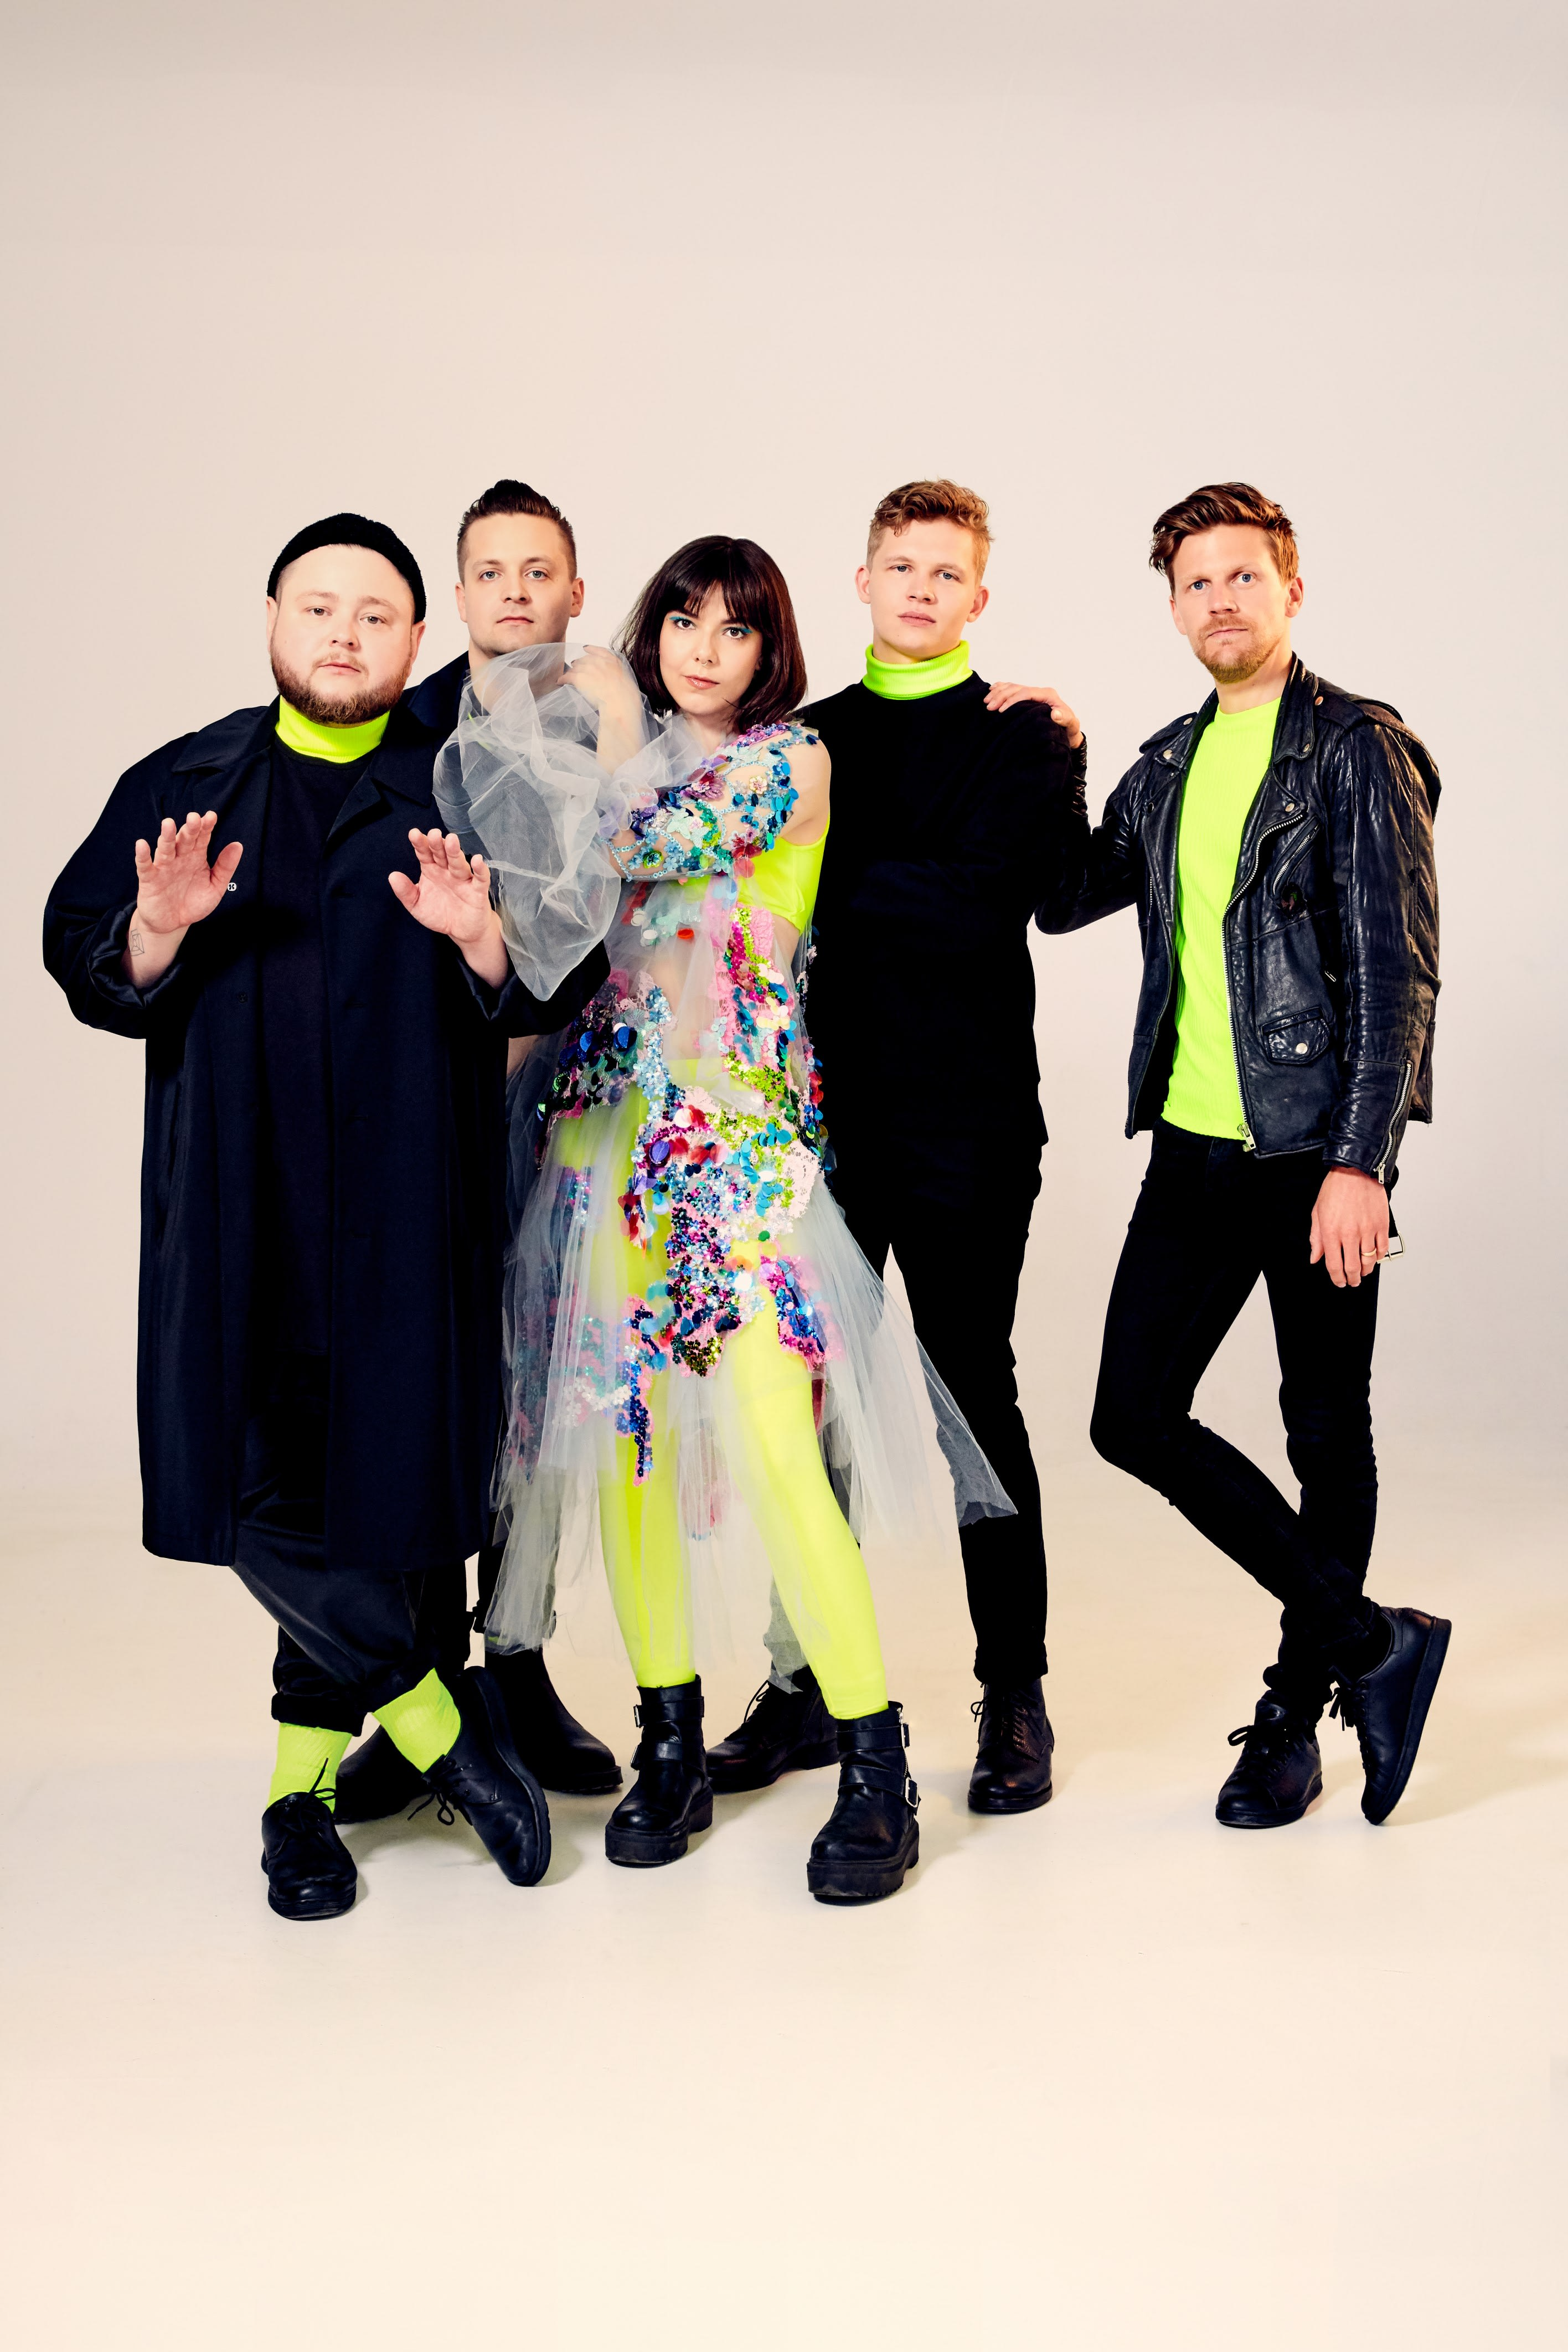 All five members of the Monsters and Men band pictured here with coordinating black and neon yellow outfits